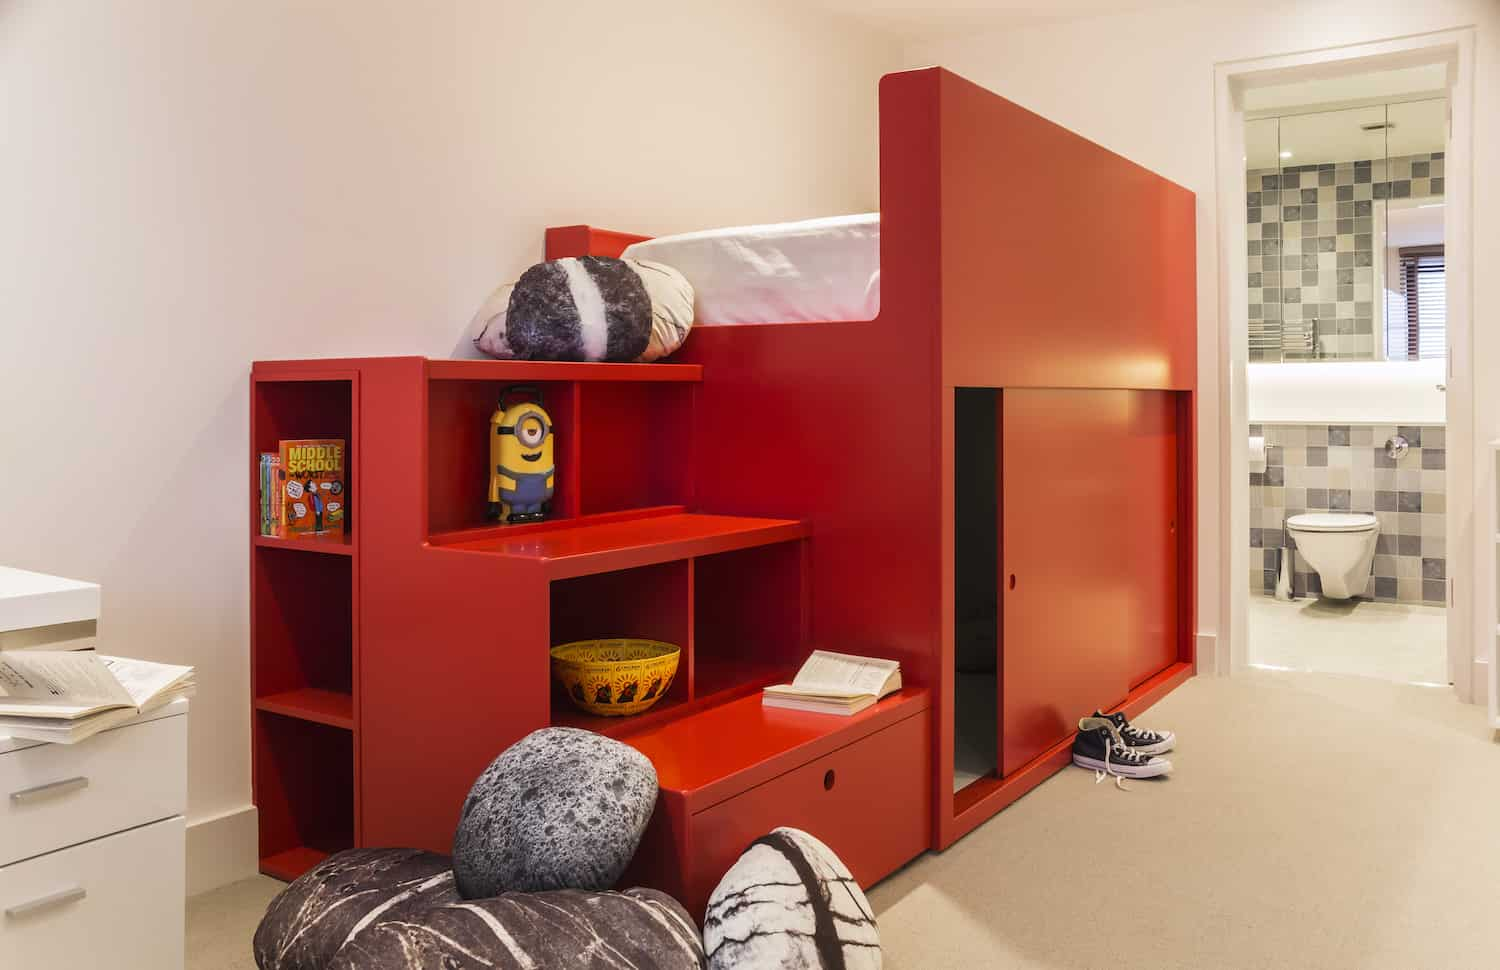 Fabulous kids bedroom with custom built red loft bed with a fort underneath. The wide stairs at the end of the bed unit doubles as shelving. This kids bedroom includes a kids bathroom off the space.